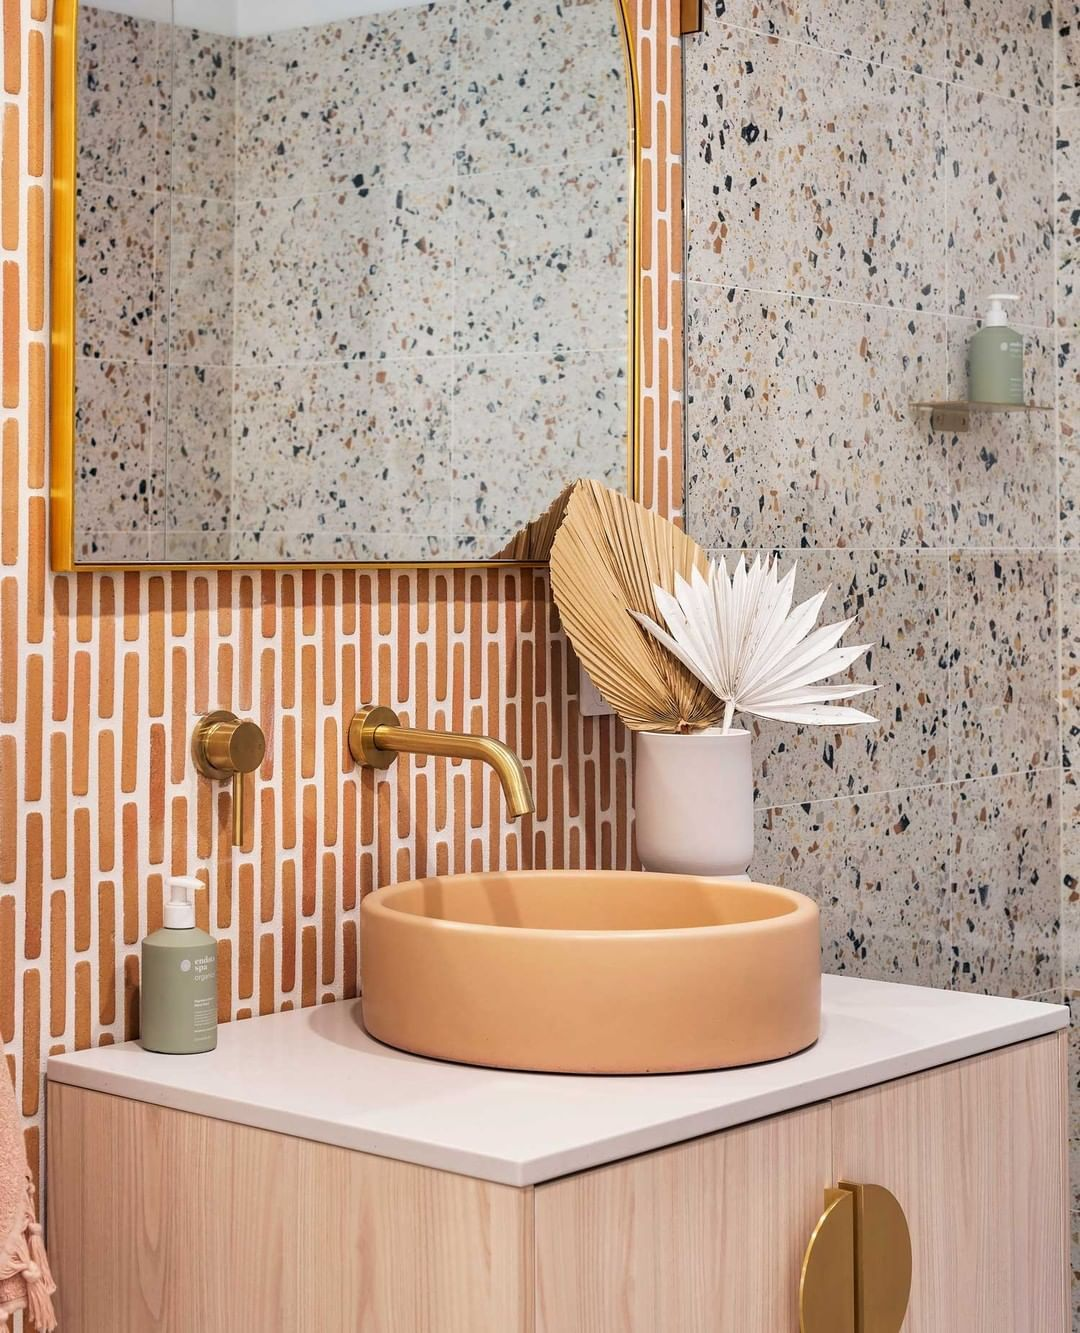 """Photo of ABI Bathrooms & Interiors on Instagram: """"We almost needed to be revived after this epic bathroom popped up 💥  @thebayhaus has created such an on-point style and design, with the…"""""""